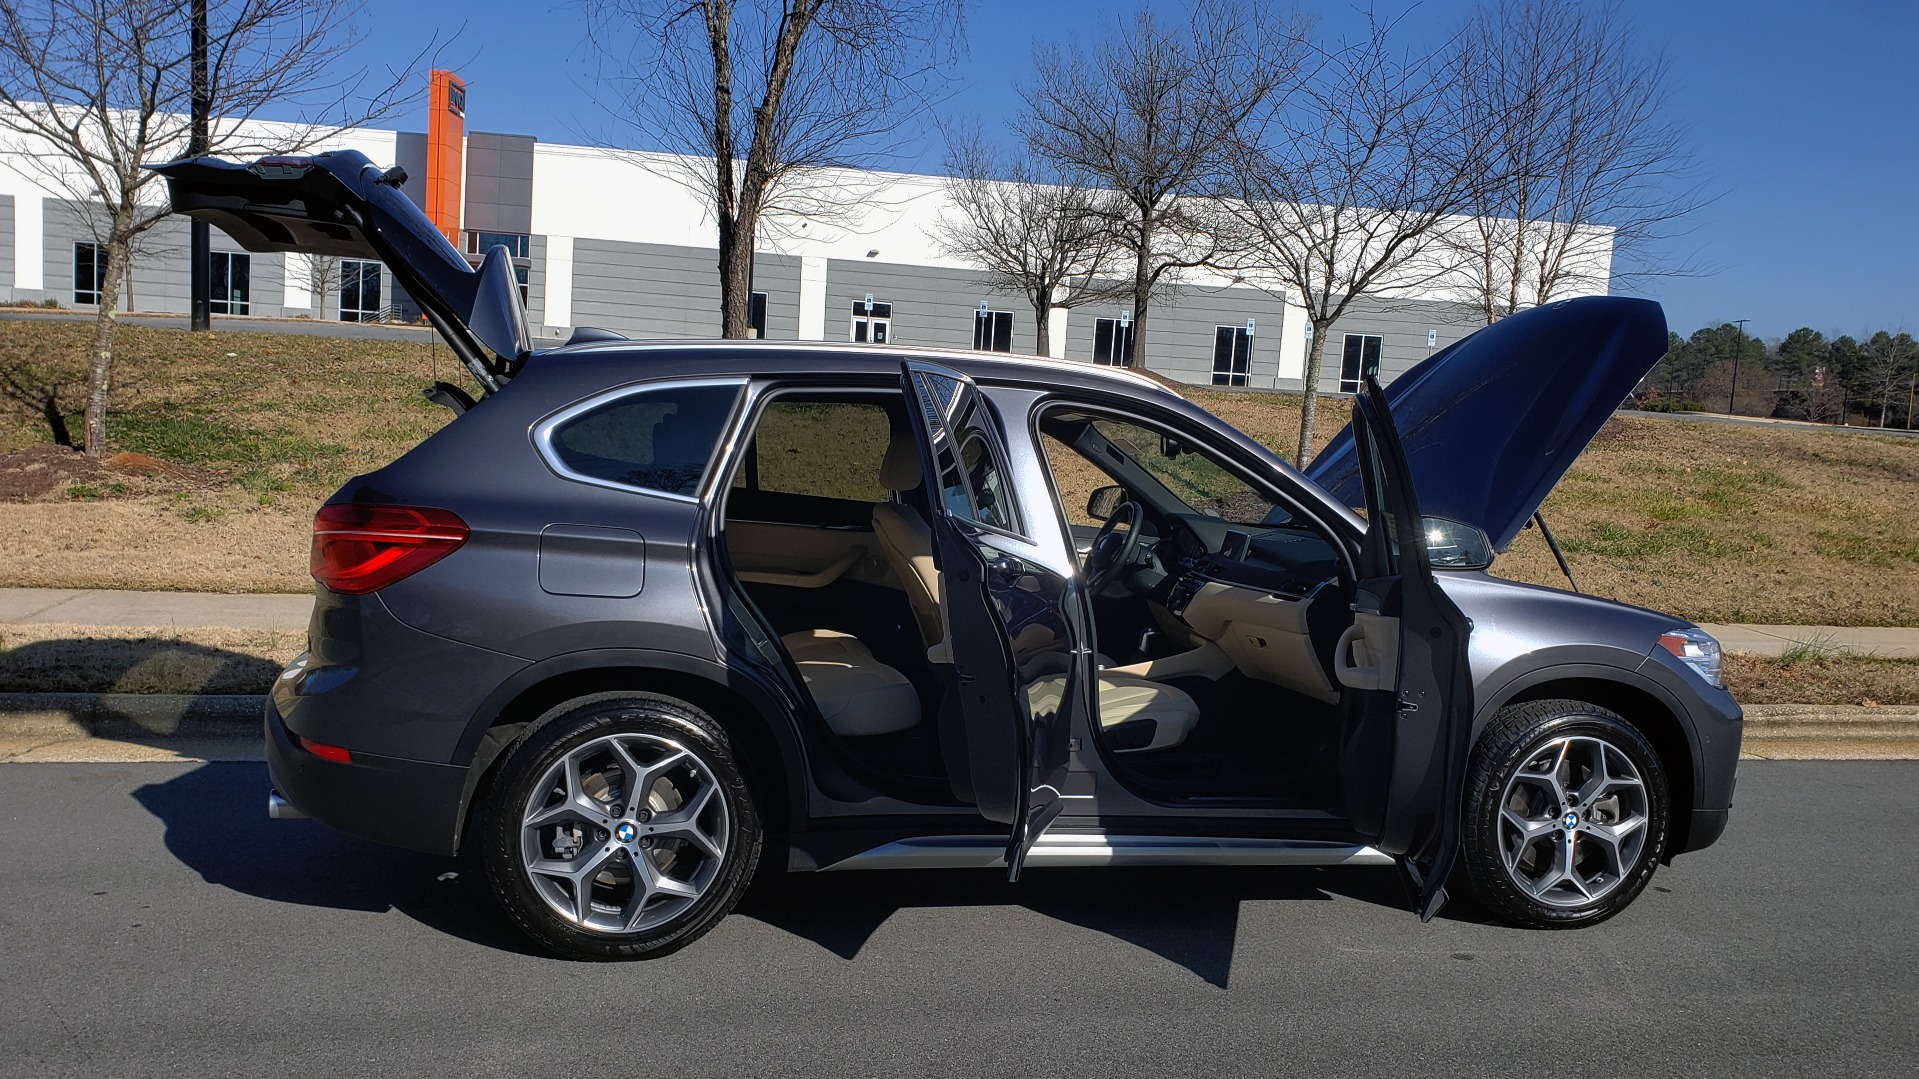 Used 2017 BMW X1 XDRIVE28I / PREM / TECH / DRVR ASST PLUS / COLD WTHR / REARVIEW for sale $26,995 at Formula Imports in Charlotte NC 28227 10